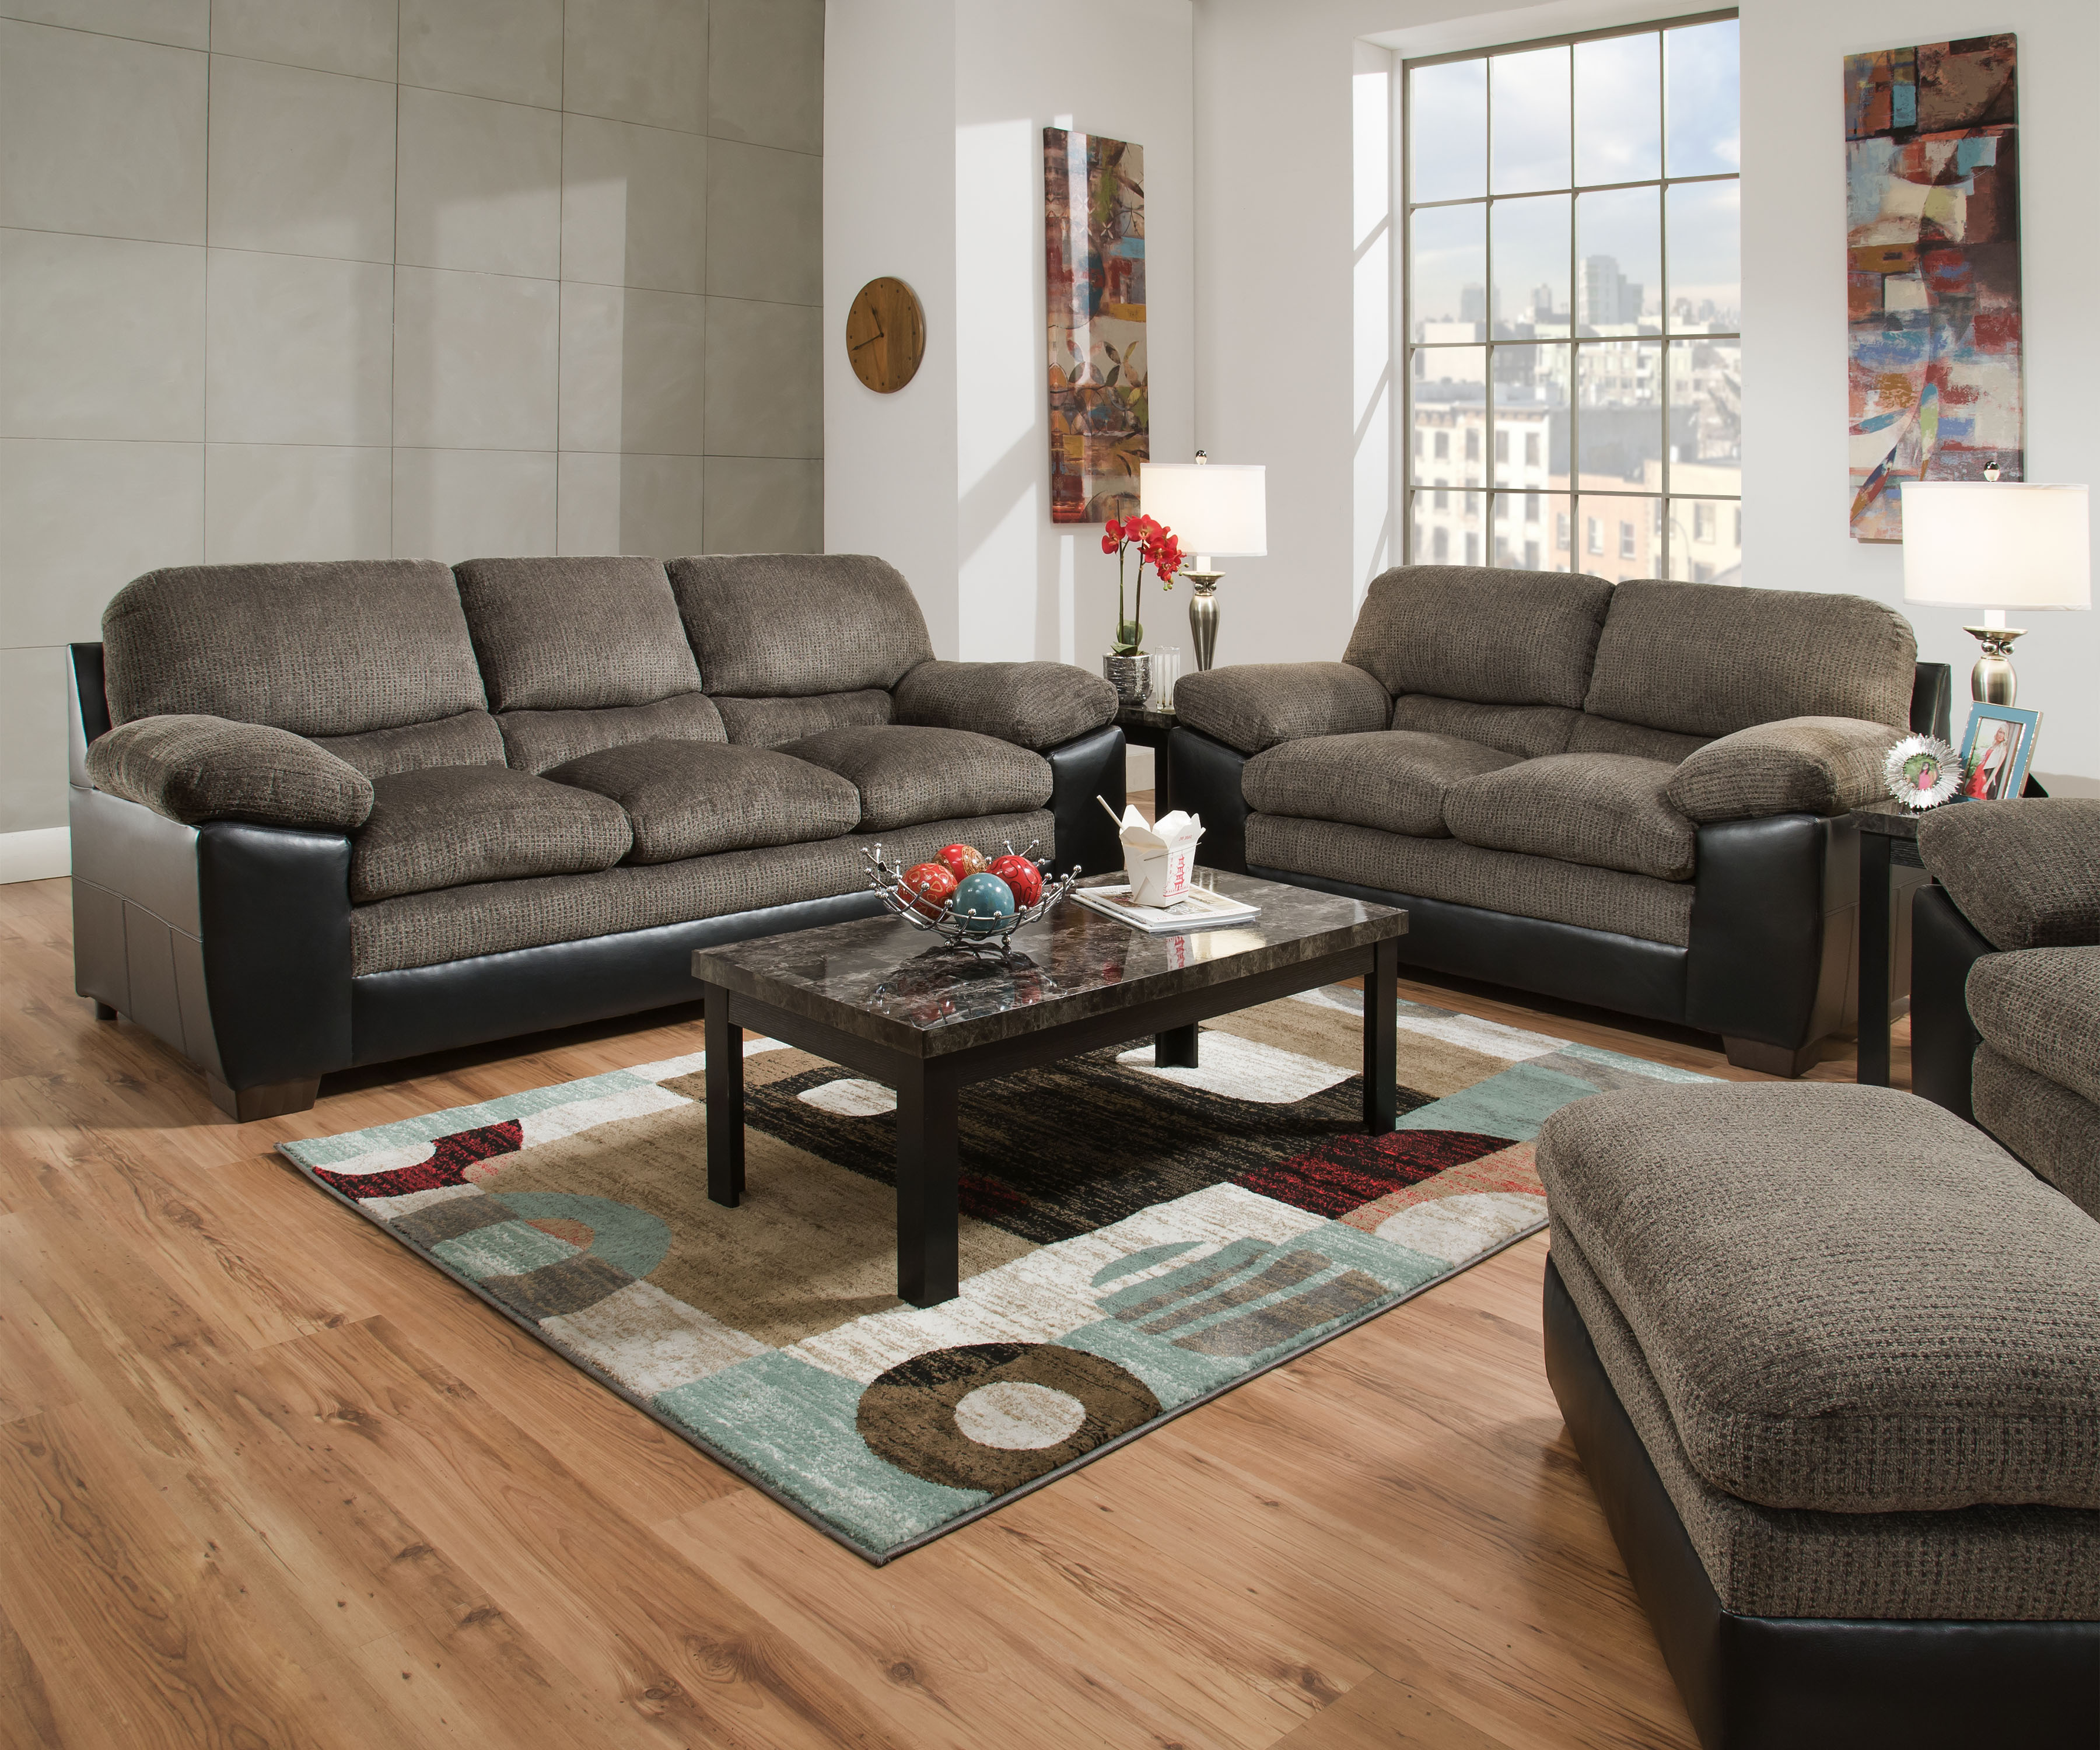 20820-20821-20822-couch-loveseat-chair-uf-8072